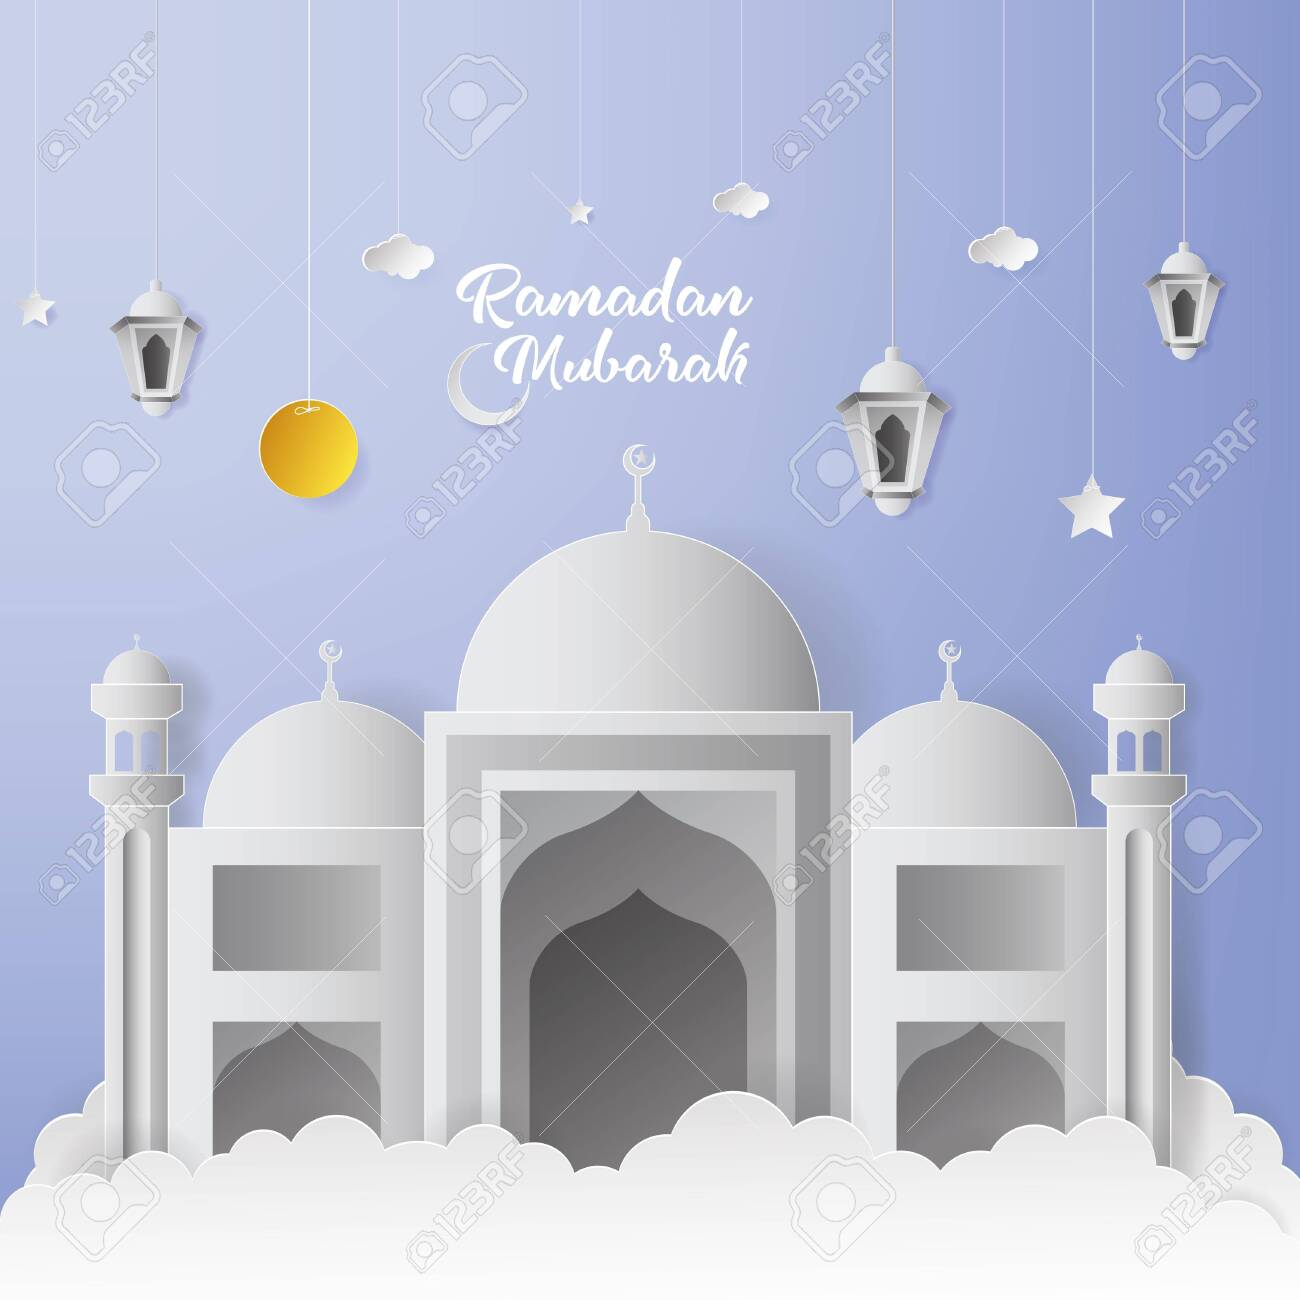 Ramadan Mubarak Greeting Card Design With Mosque And Lantern Royalty Free Cliparts Vectors And Stock Illustration Image 137173729